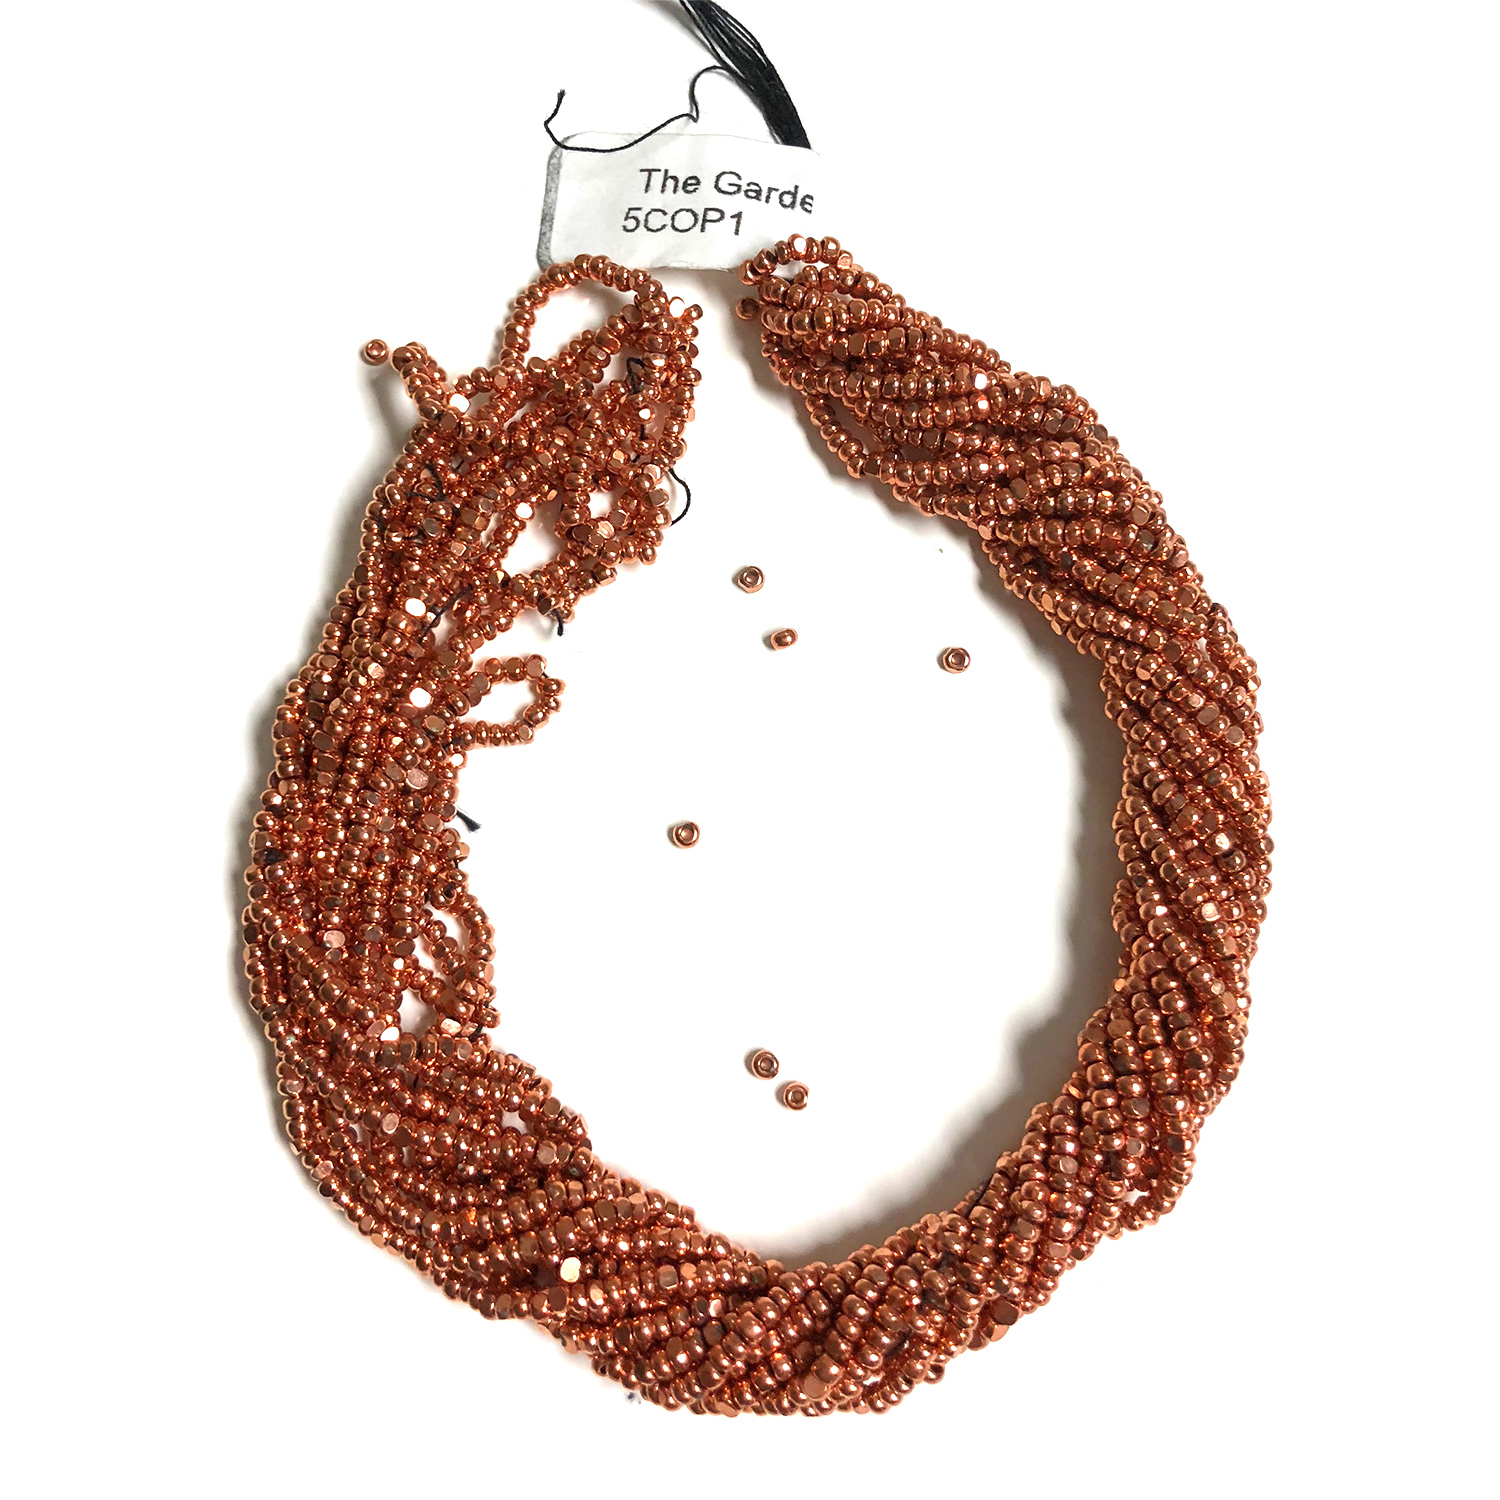 Size 11 Cut Seed, Copper Plated 6 Strands (some loose beads)